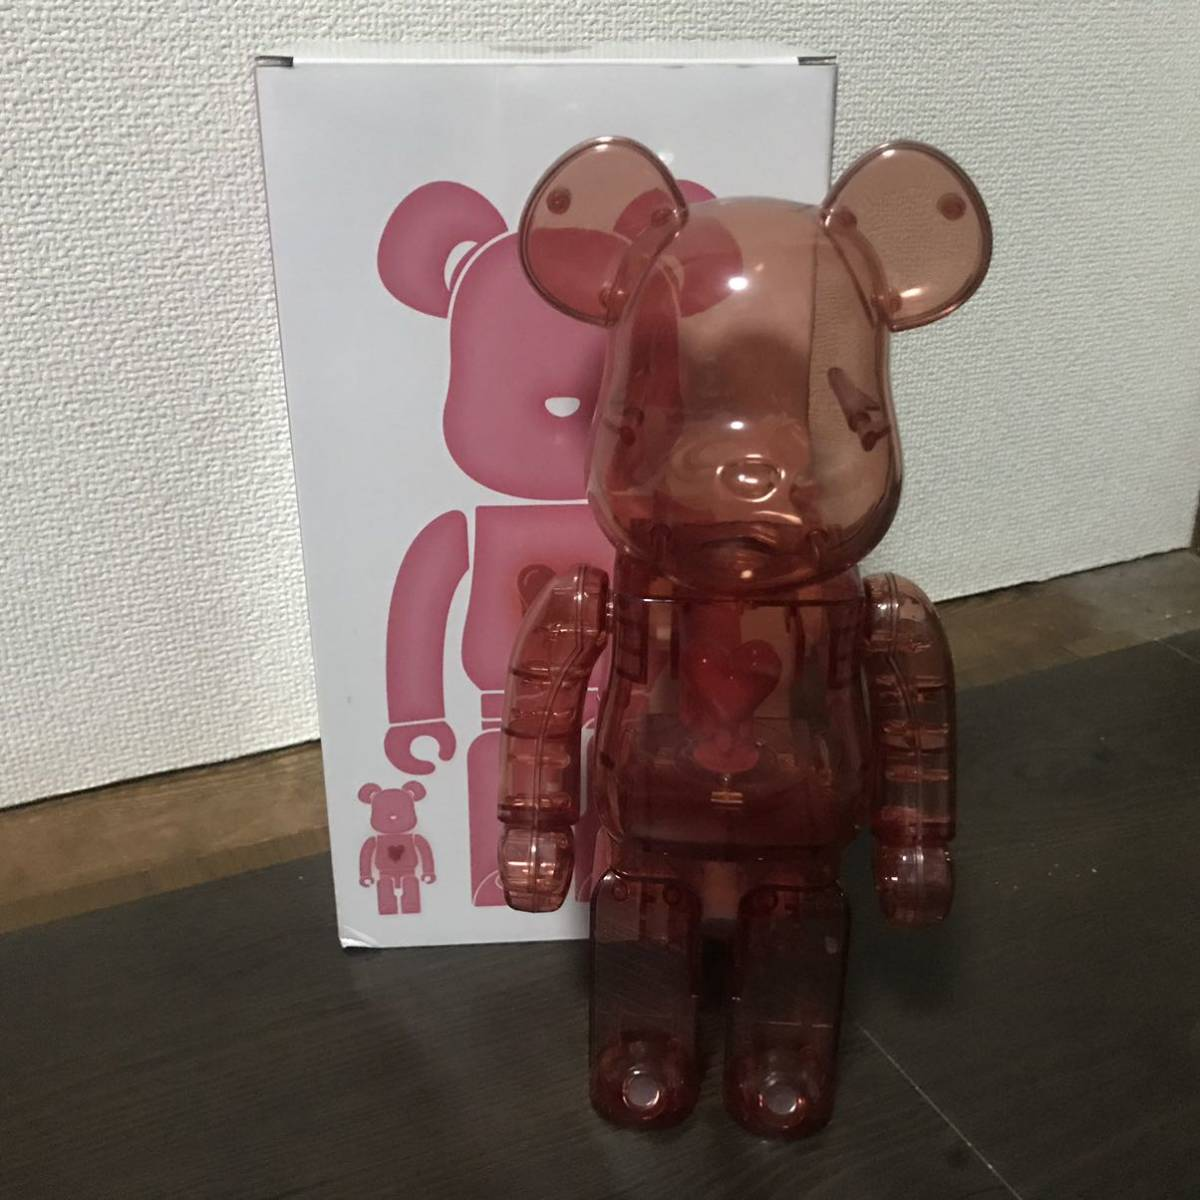 Bearbrick x Emotionally Unavailable Red Heart 400% Red レッド 赤 紅 ベアブリック BE@RBRICK _画像1